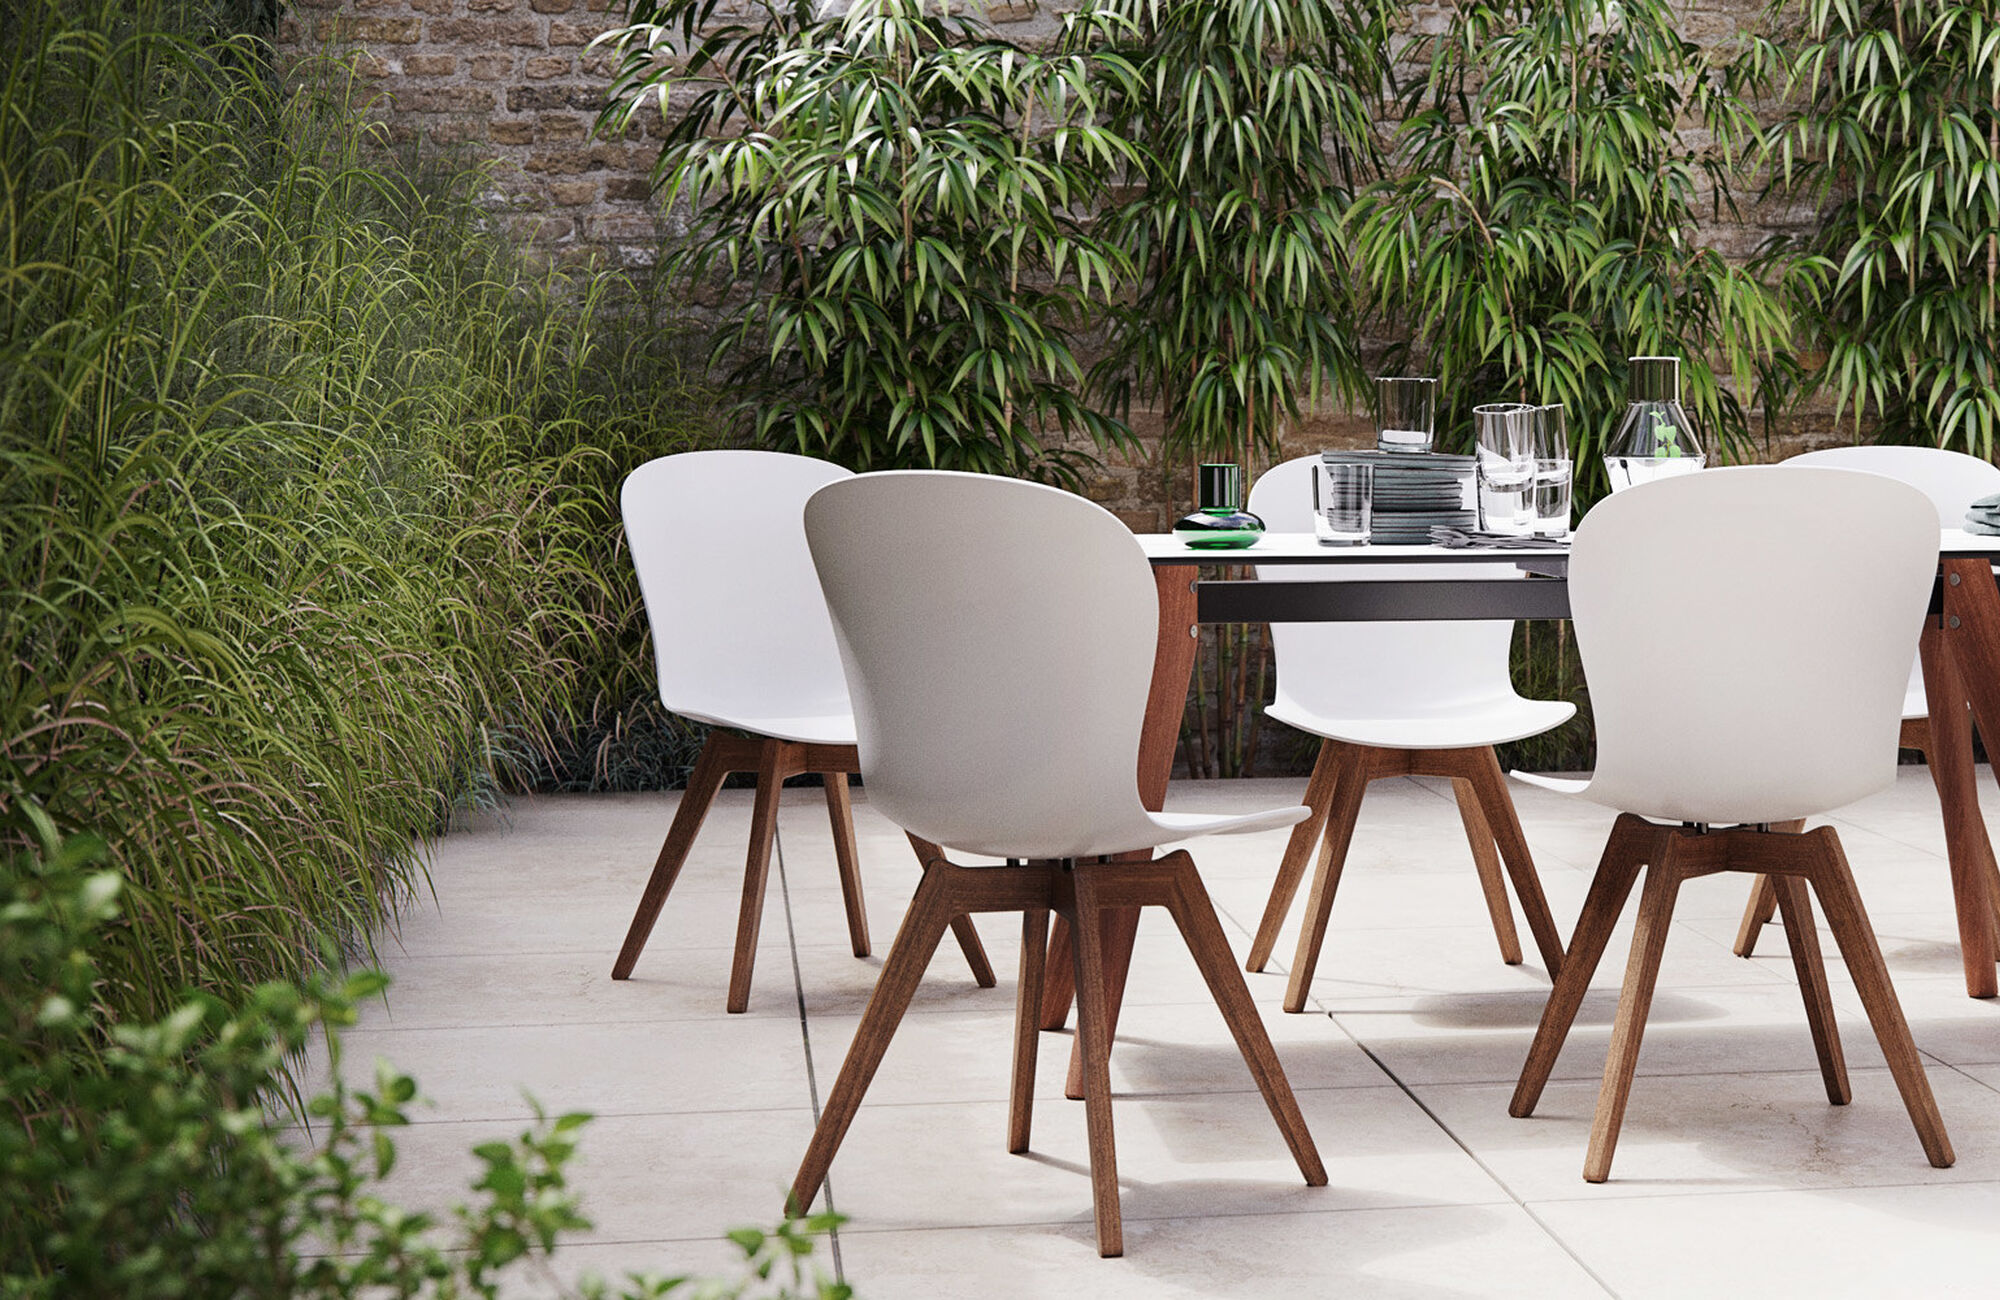 Outdoor lounge furniture - Adelaide table (for in and outdoor use)